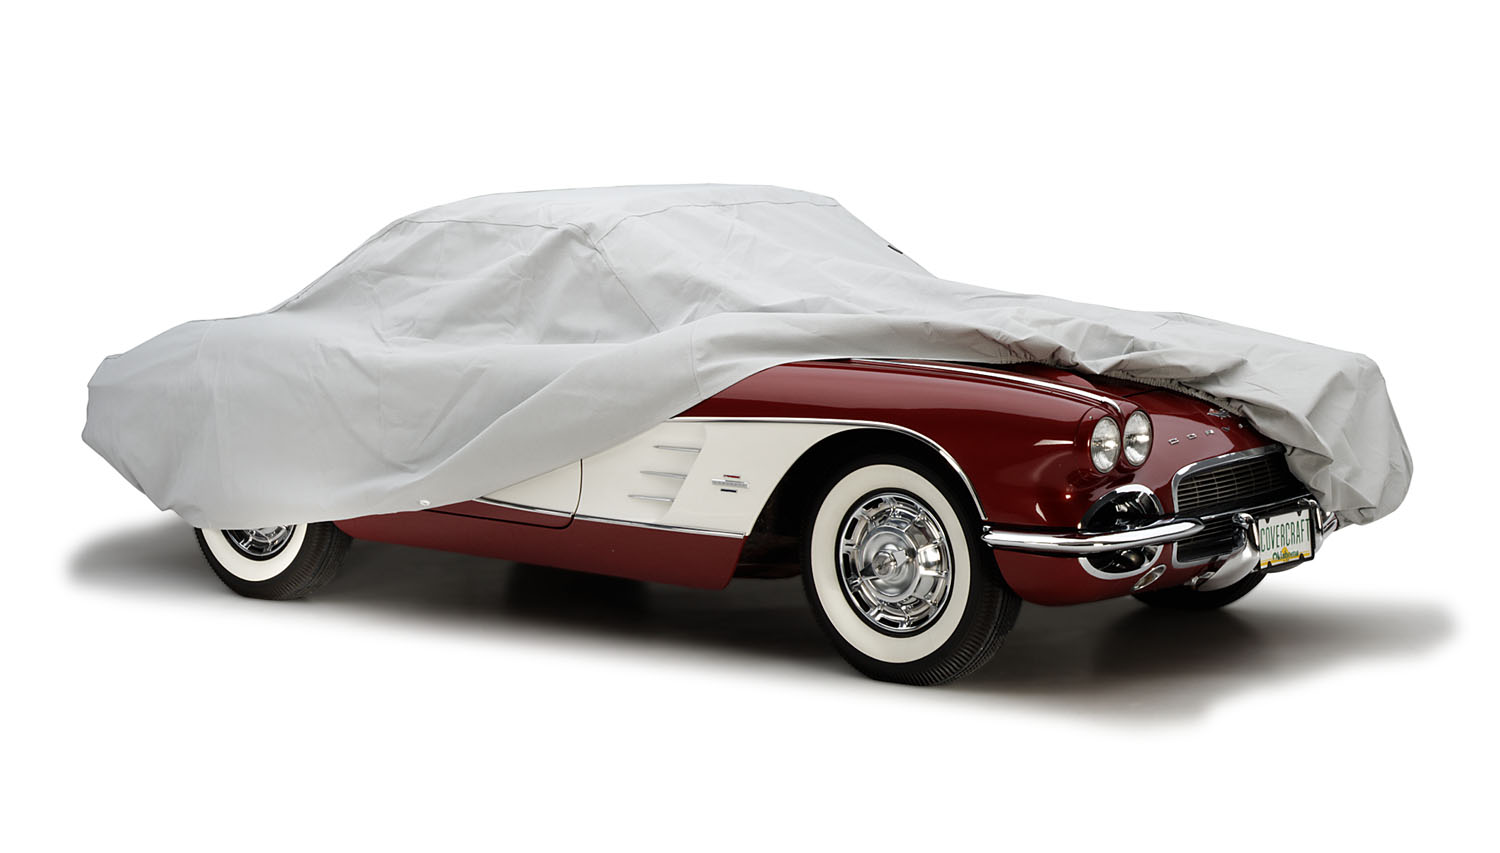 Covercraft Car Cover (C7614TK)